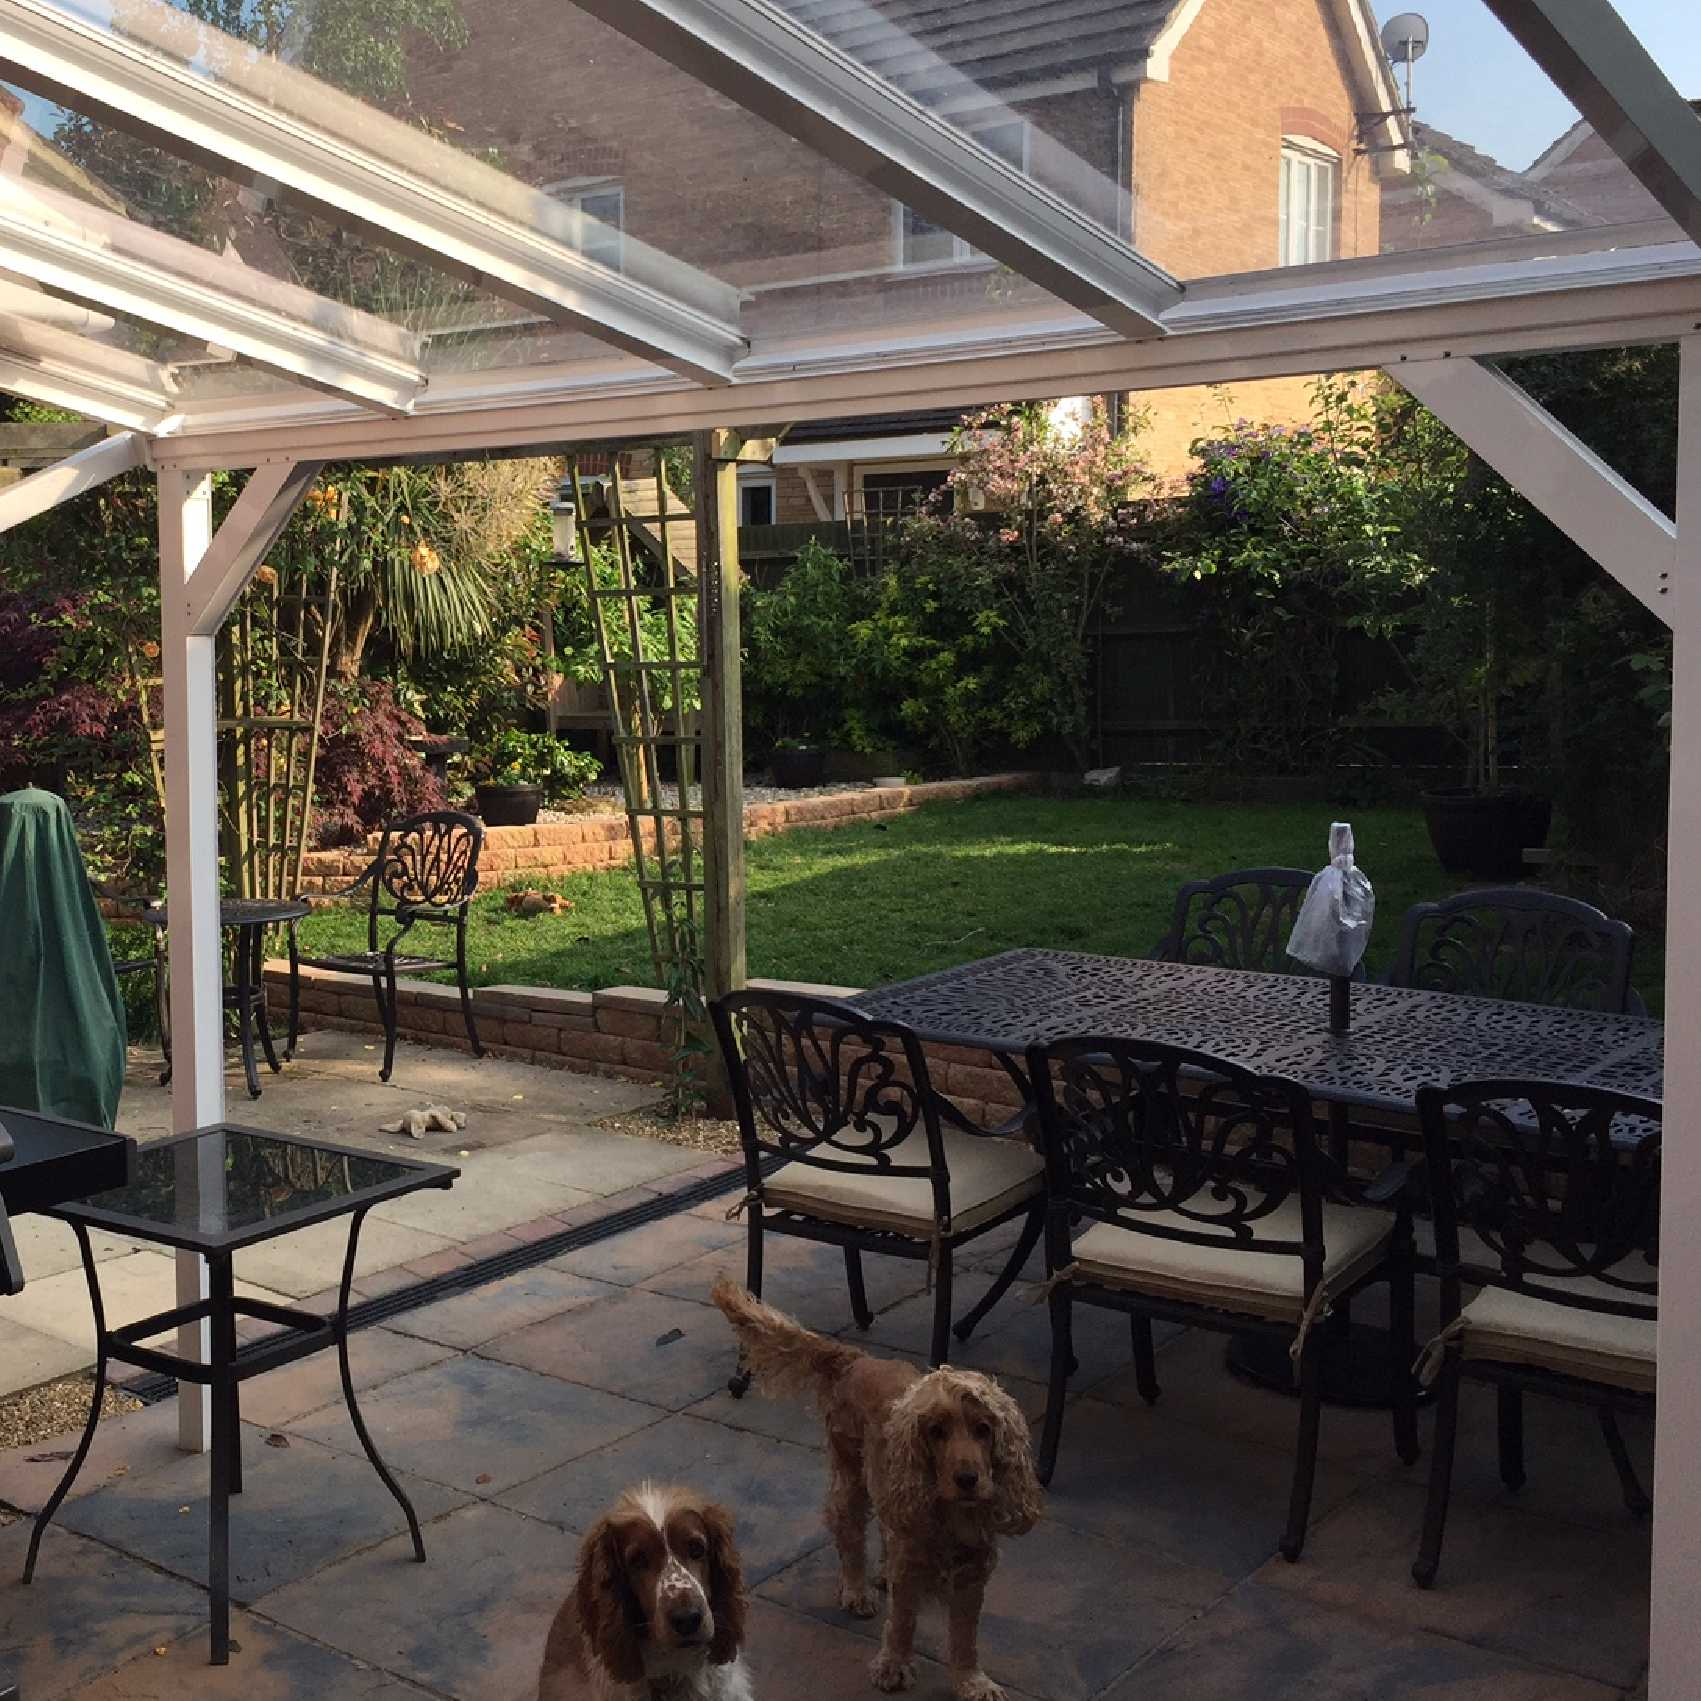 Affordable Omega Smart White Lean-To Canopy UNGLAZED for 6mm Glazing - 3.5m (W) x 1.5m (P), (3) Supporting Posts